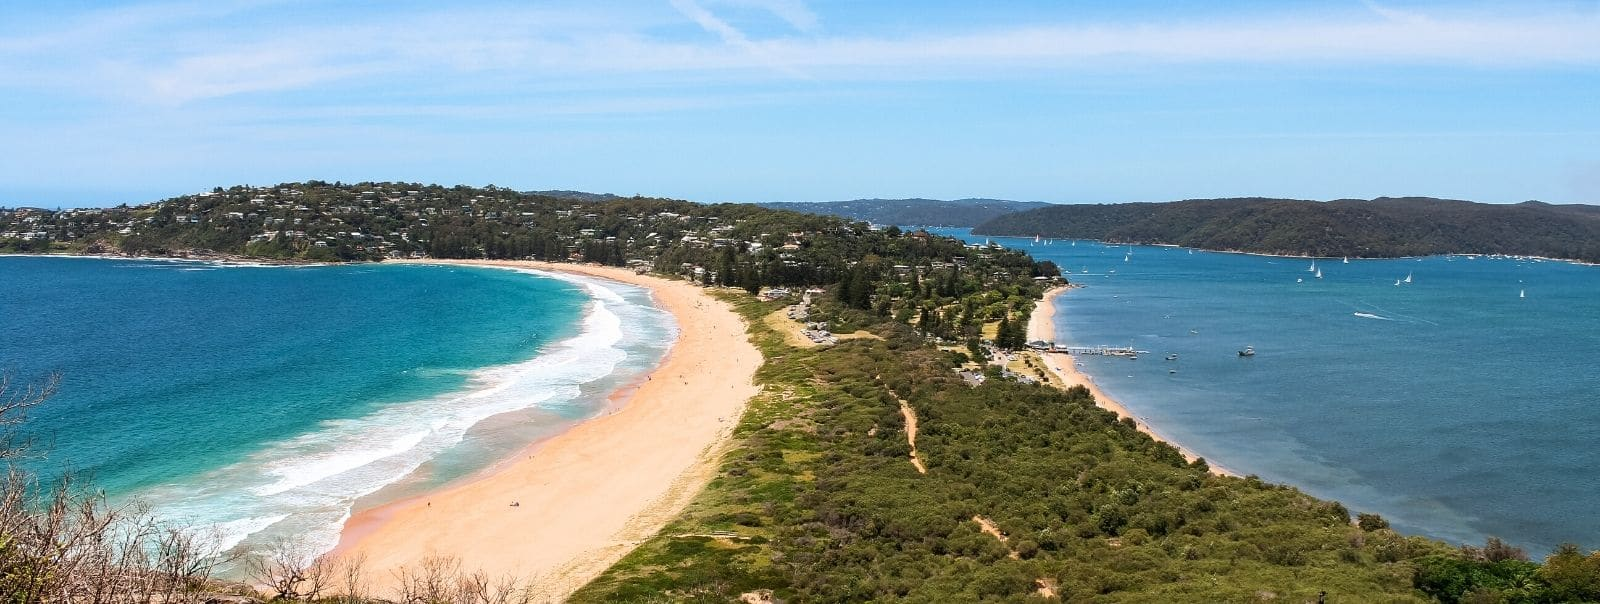 Looking out over Palm Beach from lookout, one of the top things to do in Sydney